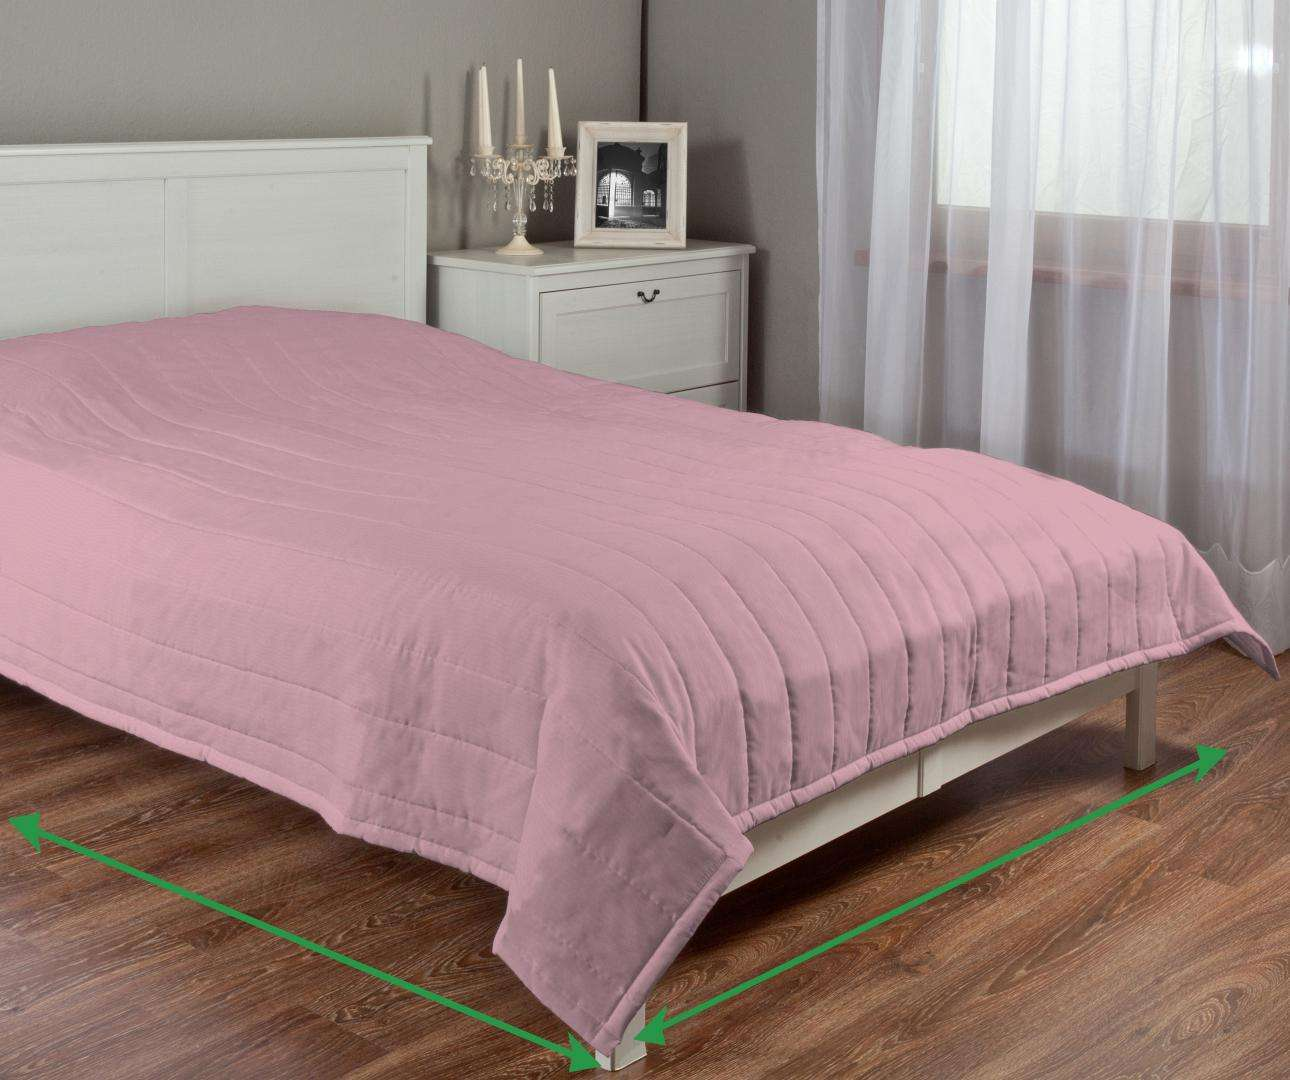 Quilted throw (vertical quilt pattern) in collection Milano, fabric: 150-35